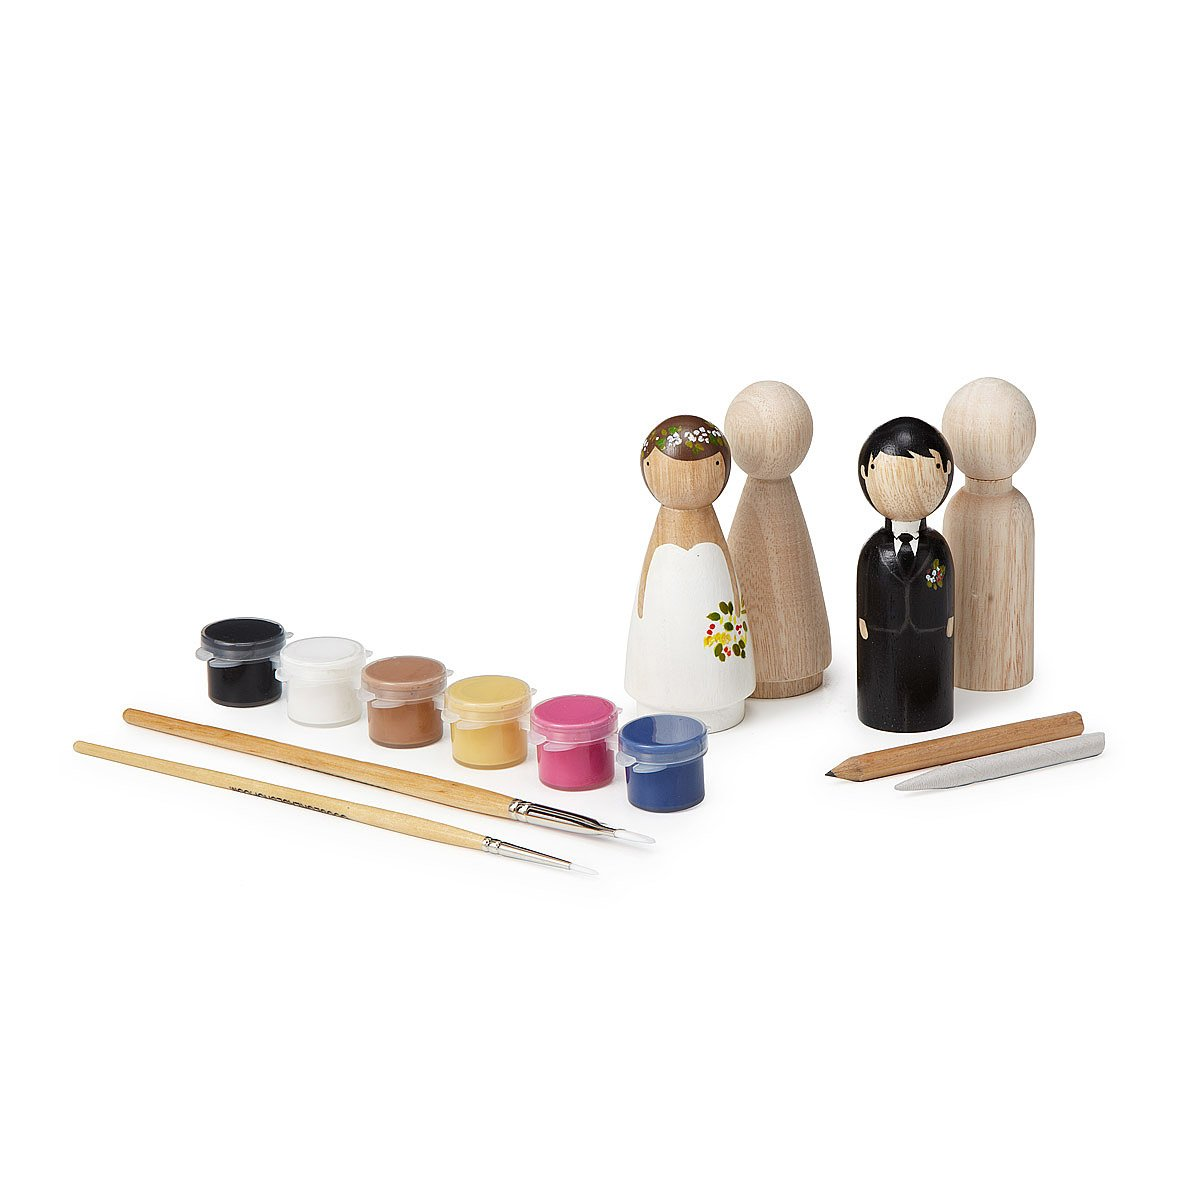 diy wedding cake topper kit crafts bride and groom figures bridal